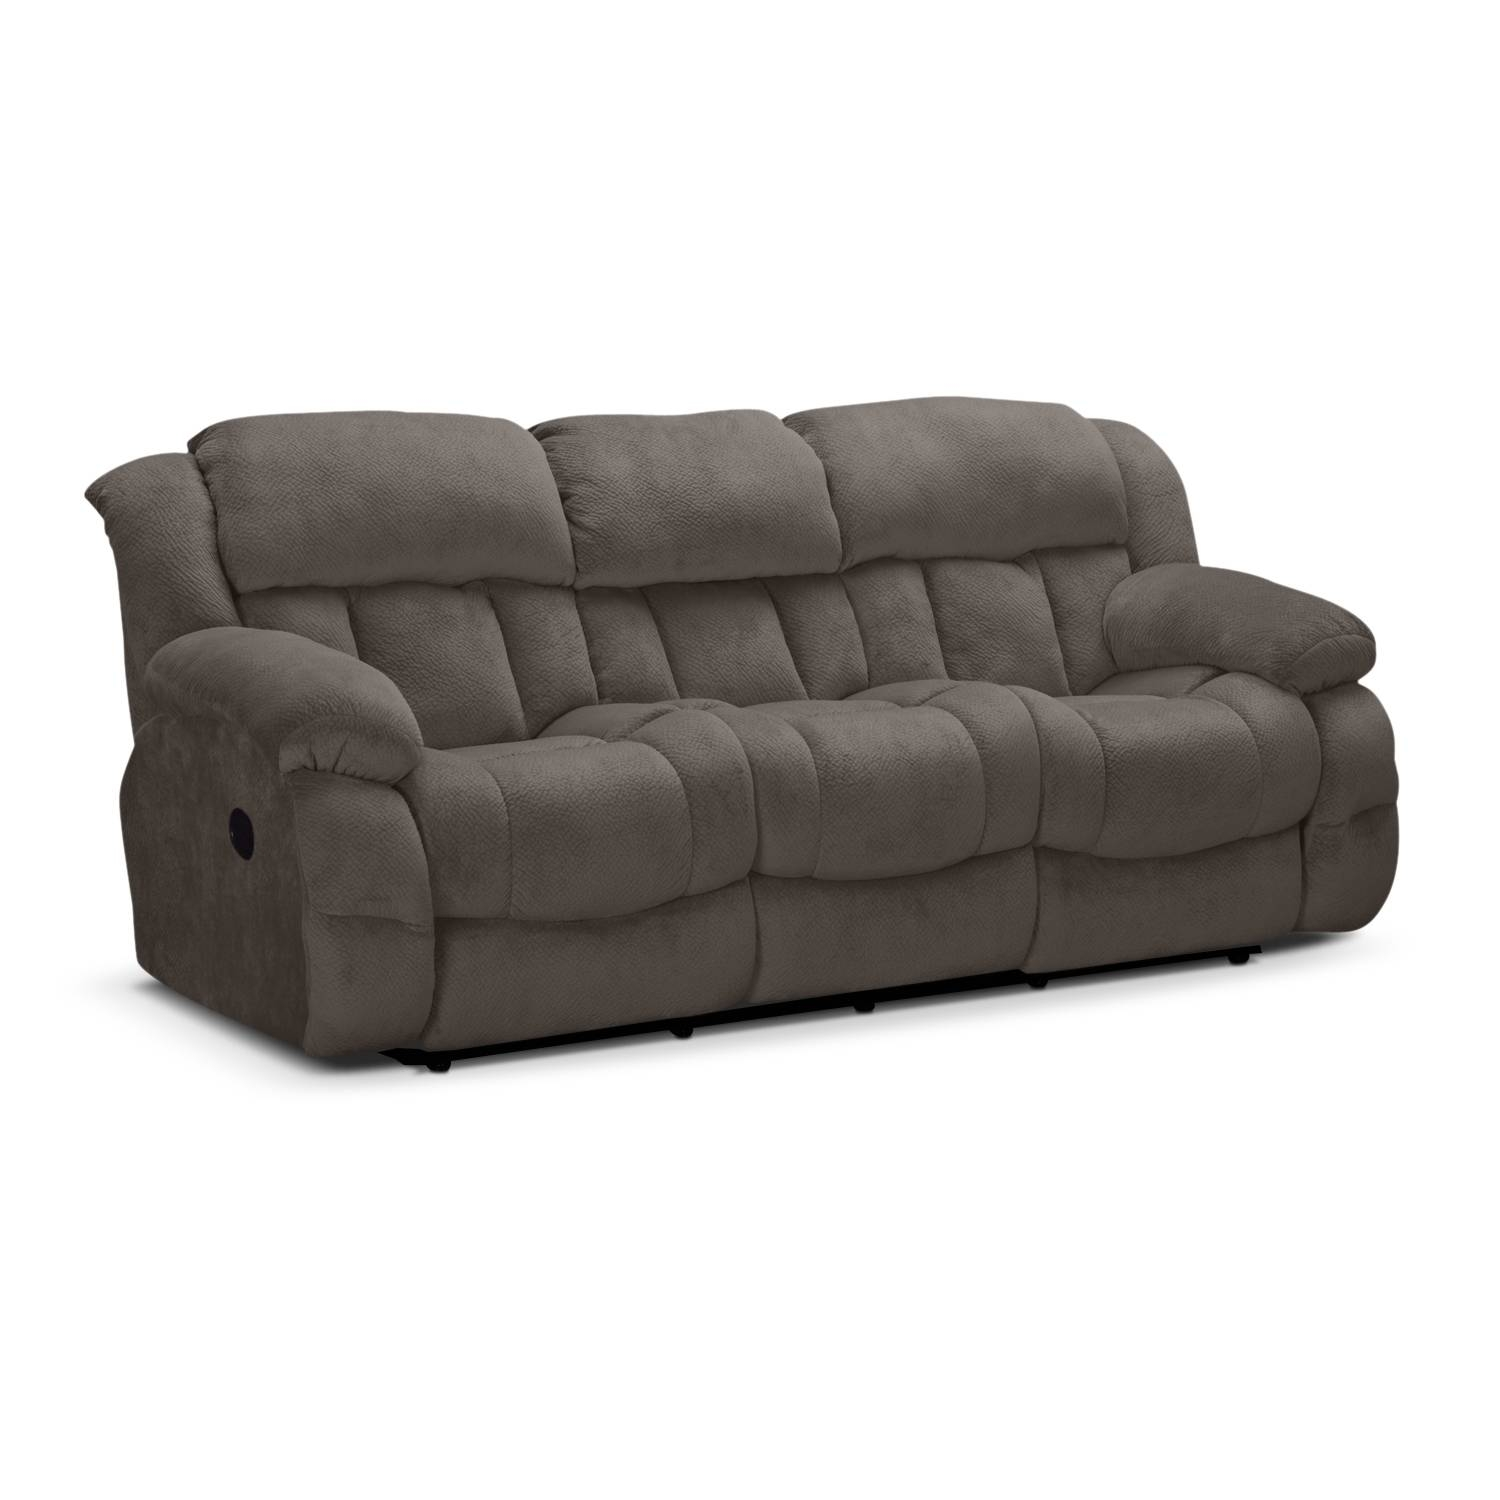 Recliner Sofa Chair 35 With Recliner Sofa Chair | Chinaklsk throughout Sofa Chair Recliner (Image 24 of 30)